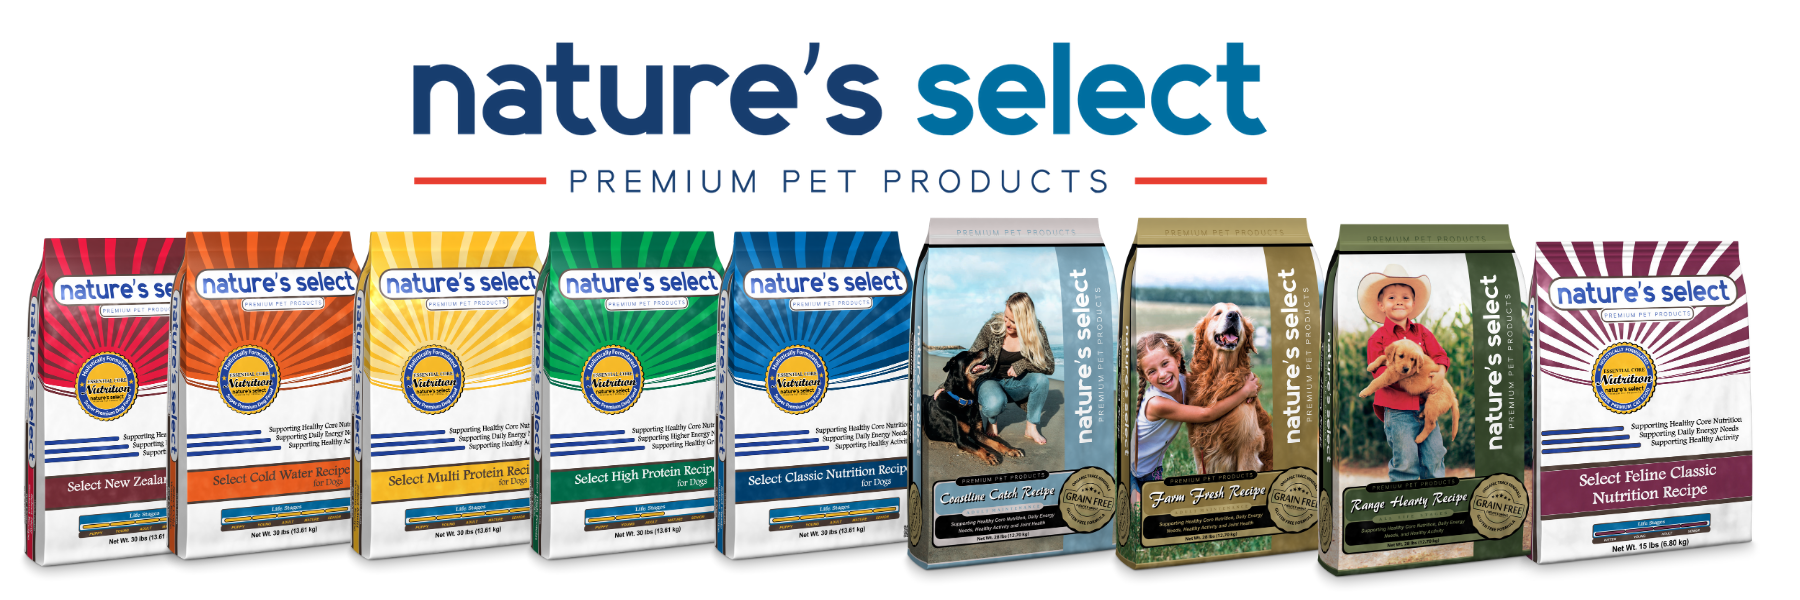 Nature's Select Product Lineup